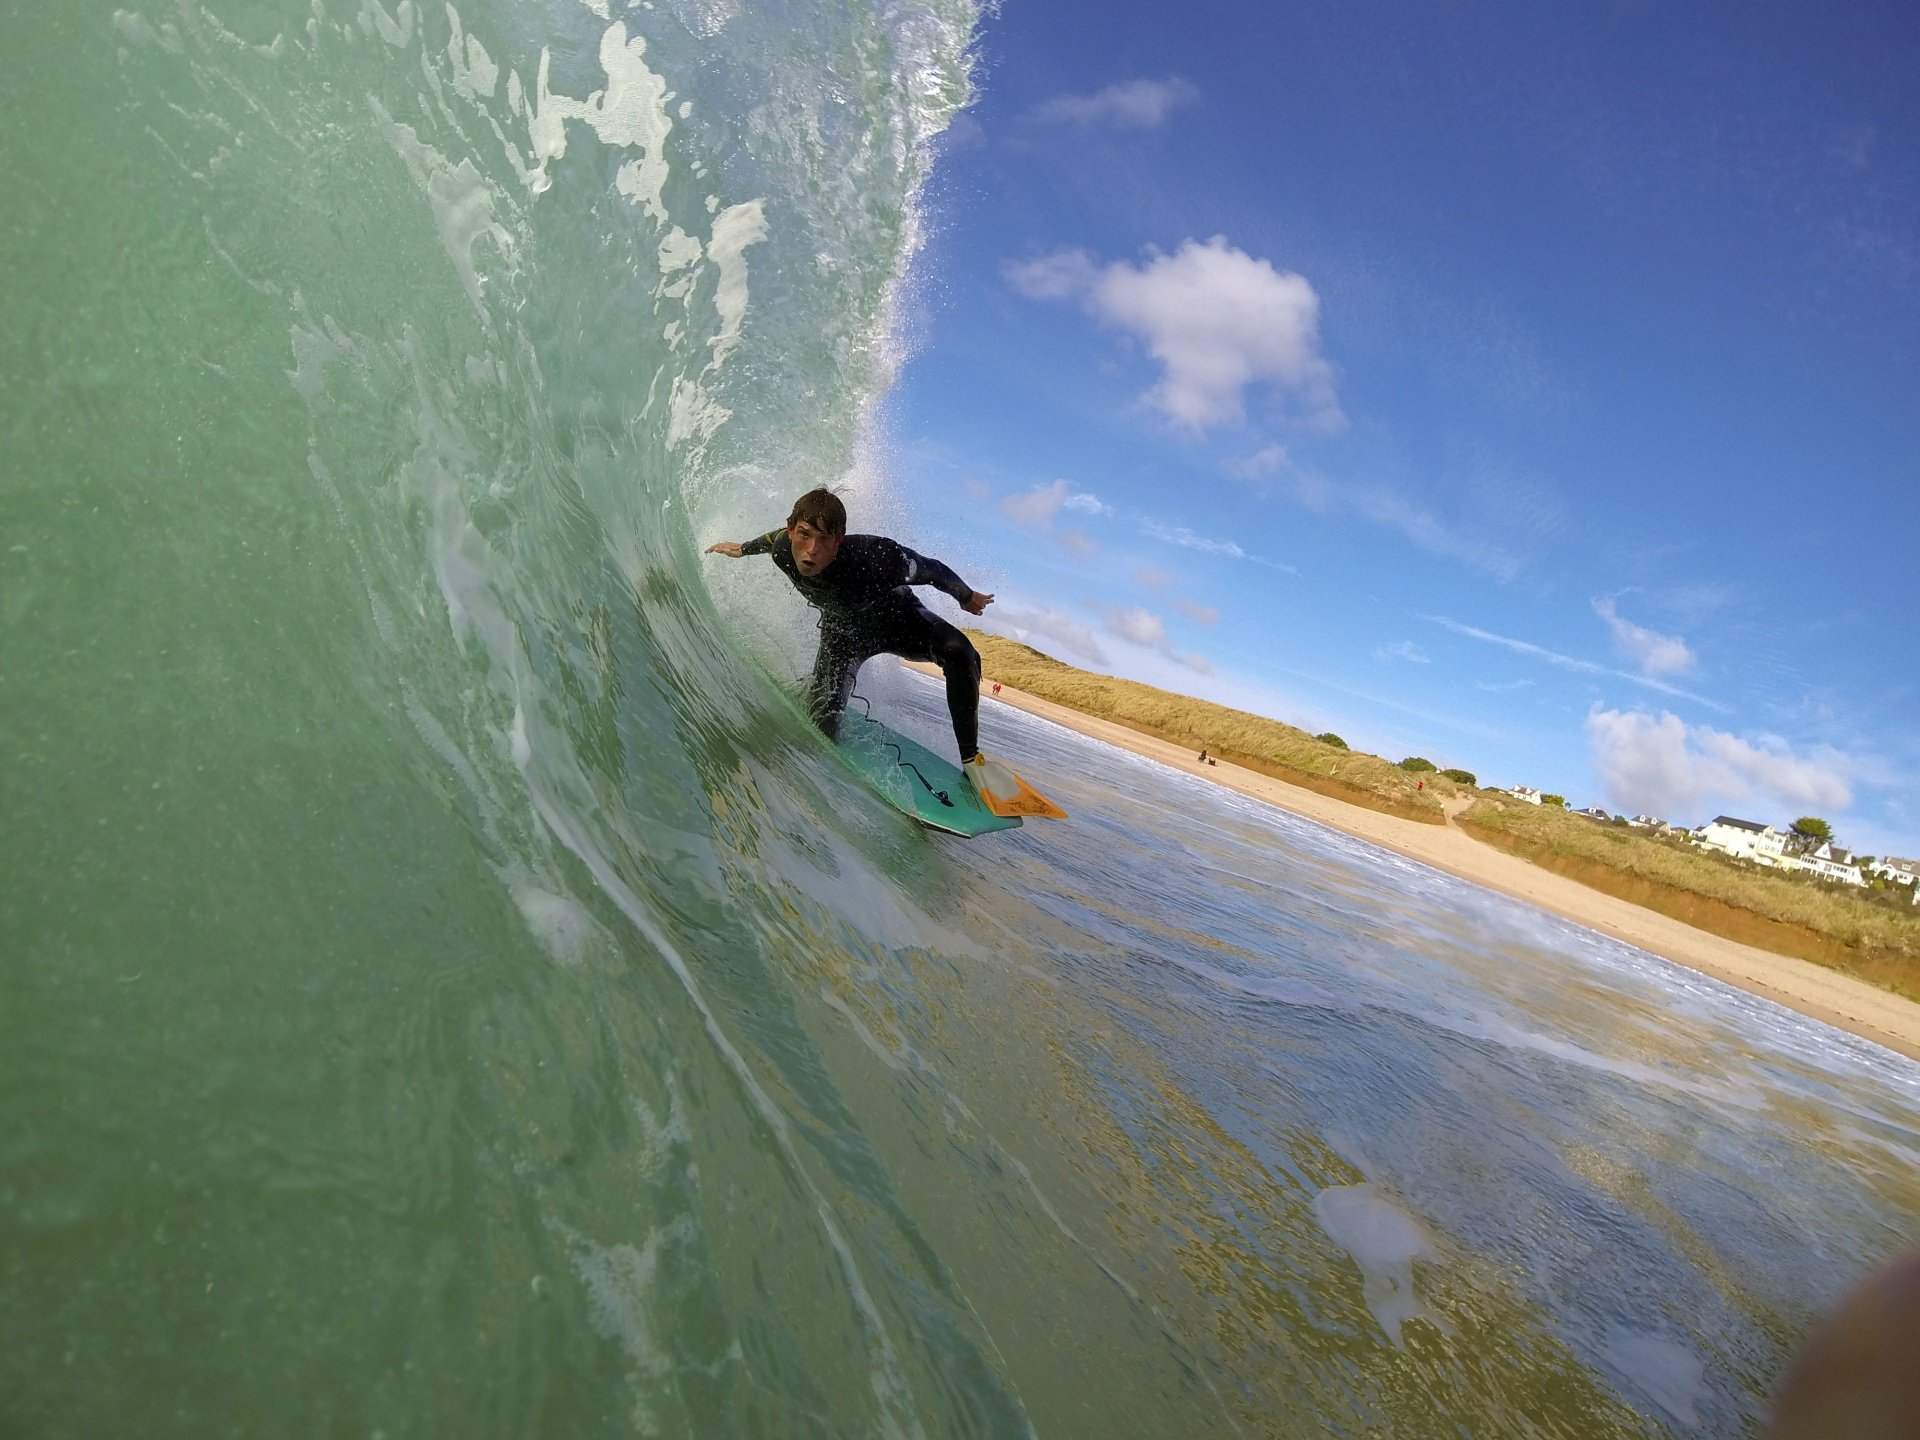 Lukes Surf Photos's photo of Praa Sands